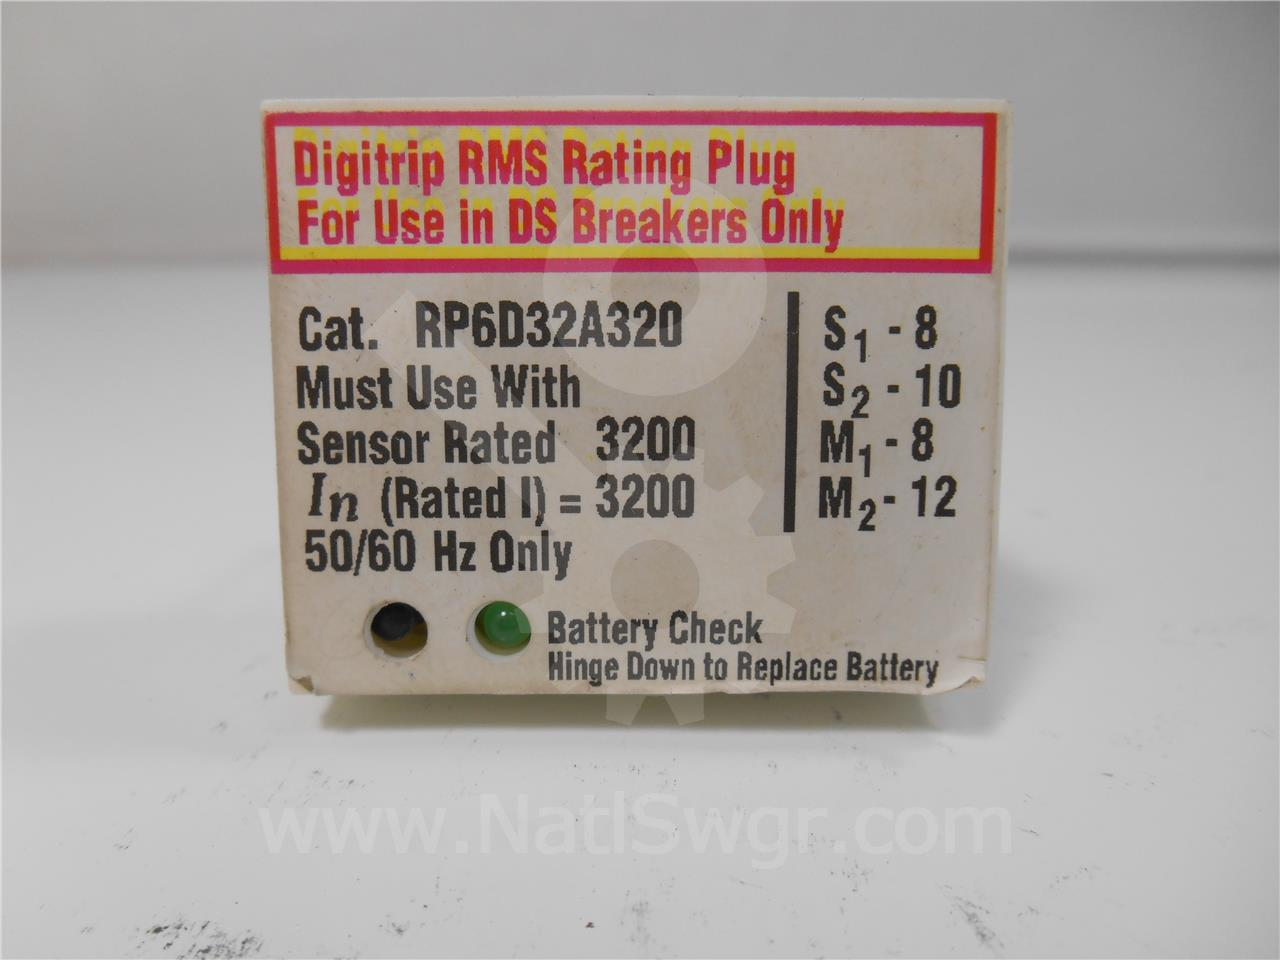 RP6D32A320 3200A Westinghouse RATING PLUG, 3200A CT FOR DIGITRIP 10 SERIES